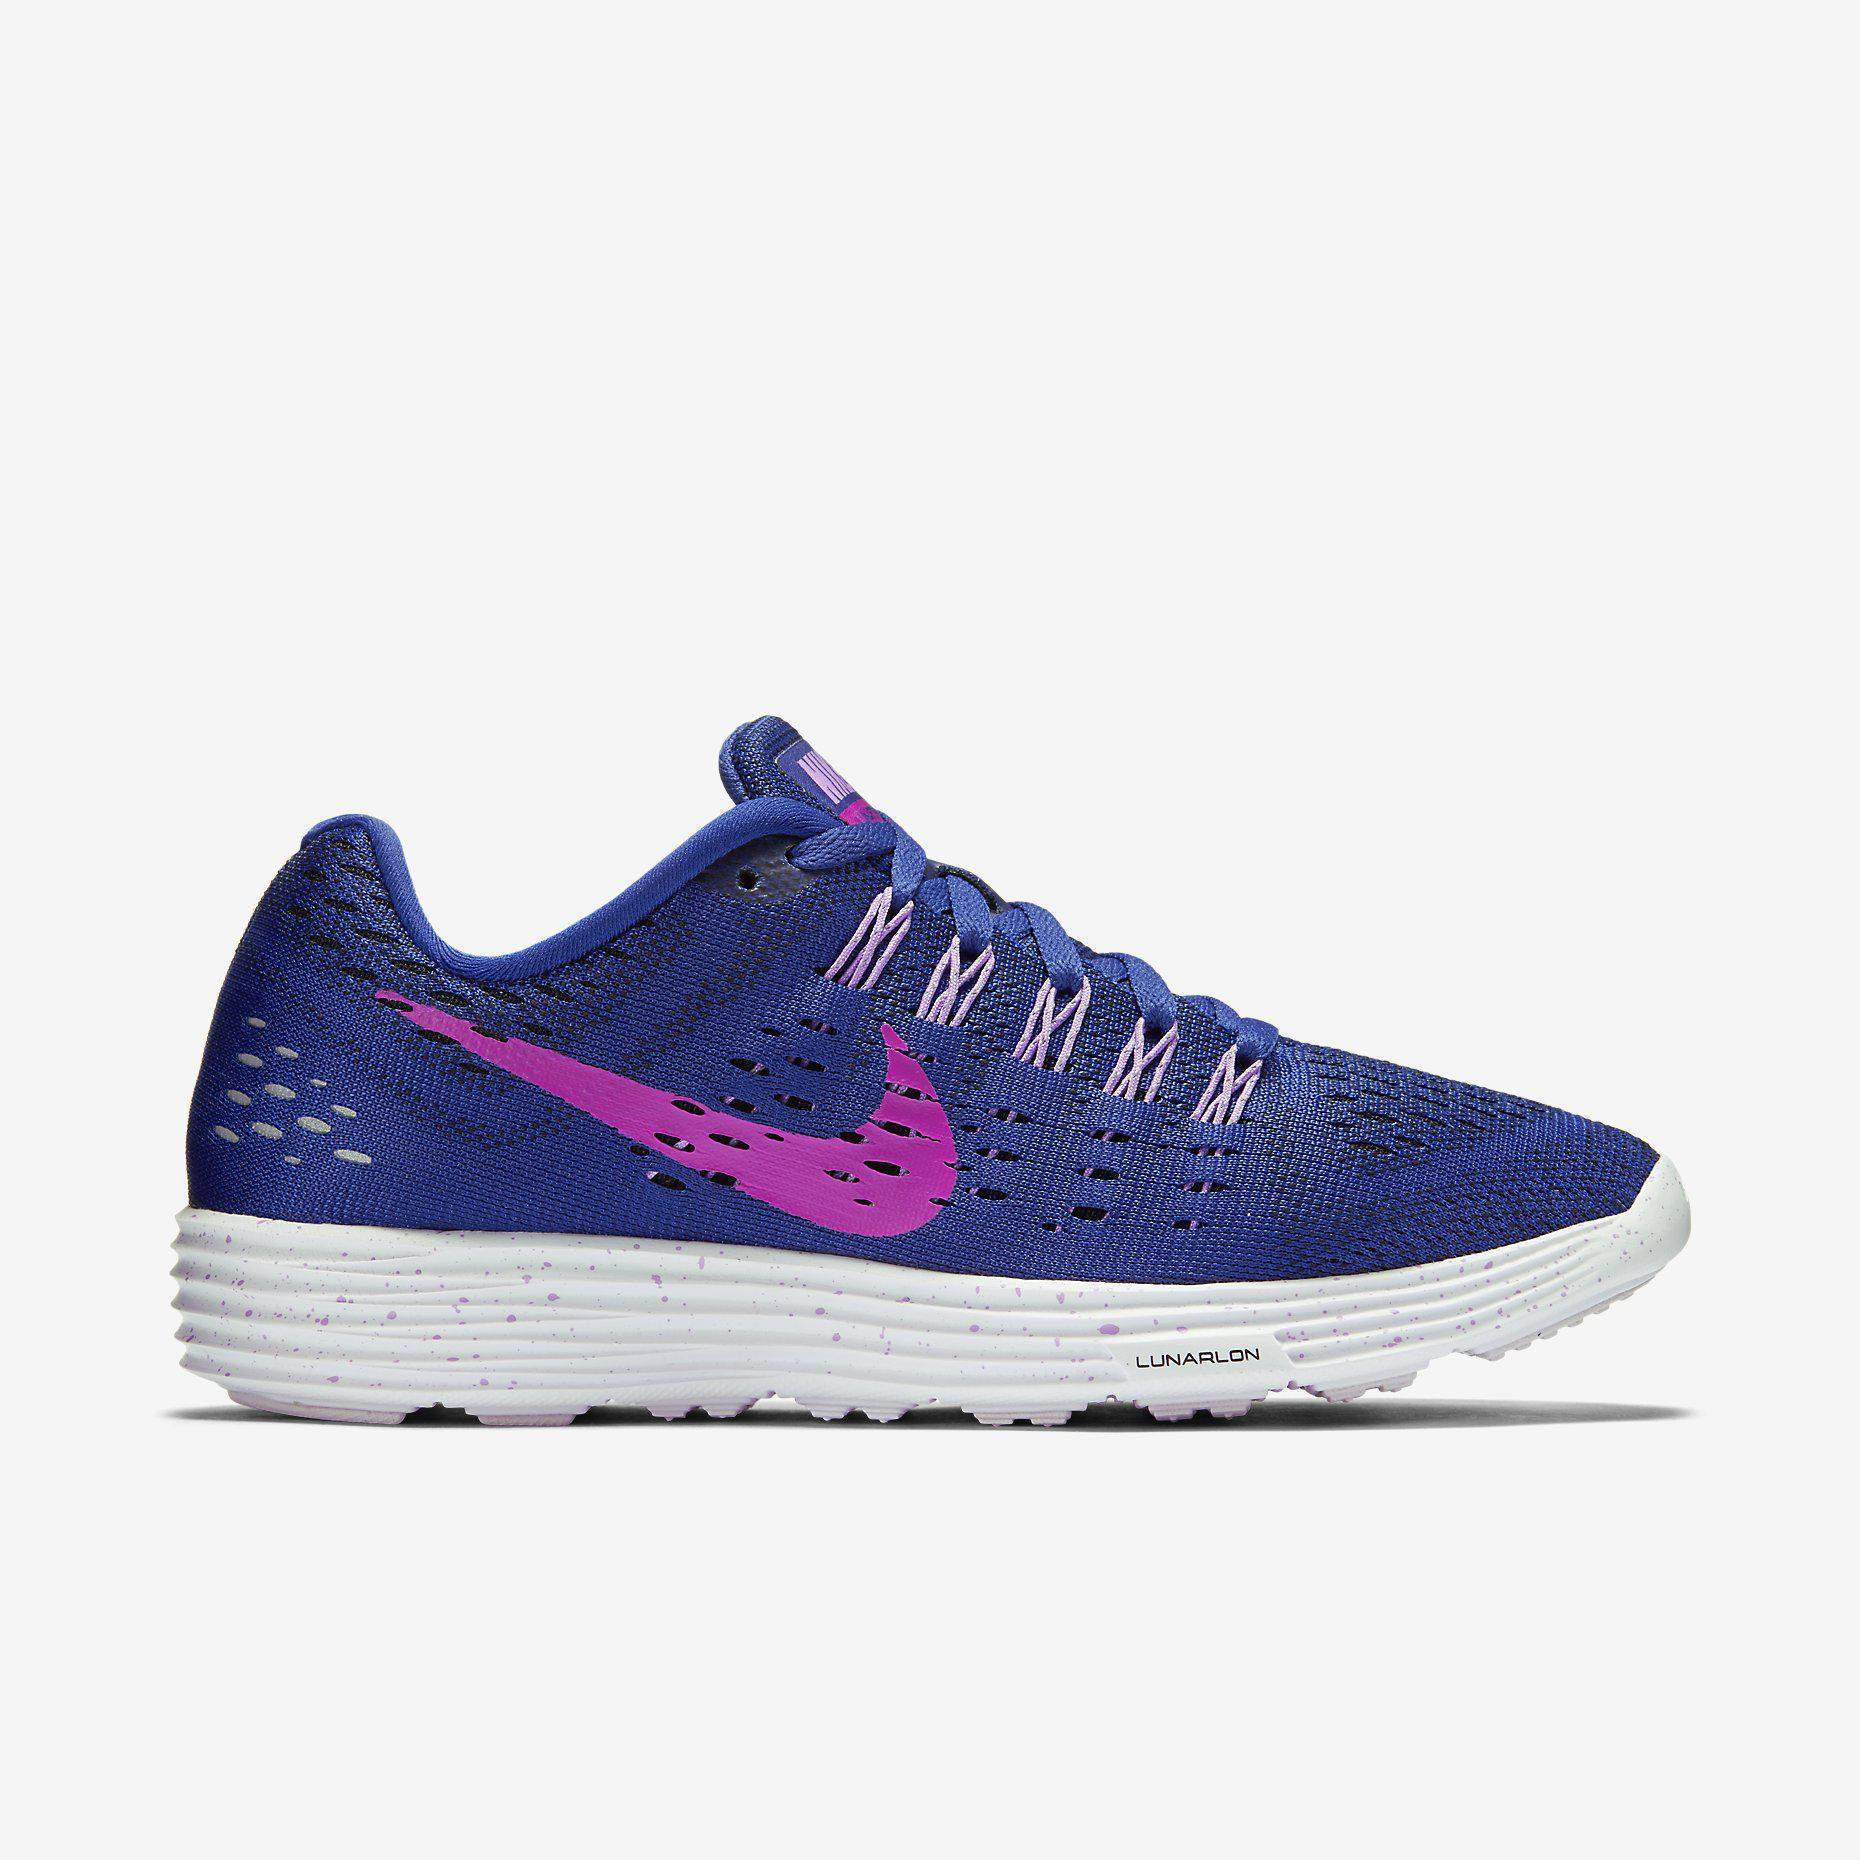 Nike Womens LunarTempo Running Shoes - Deep Royal Blue